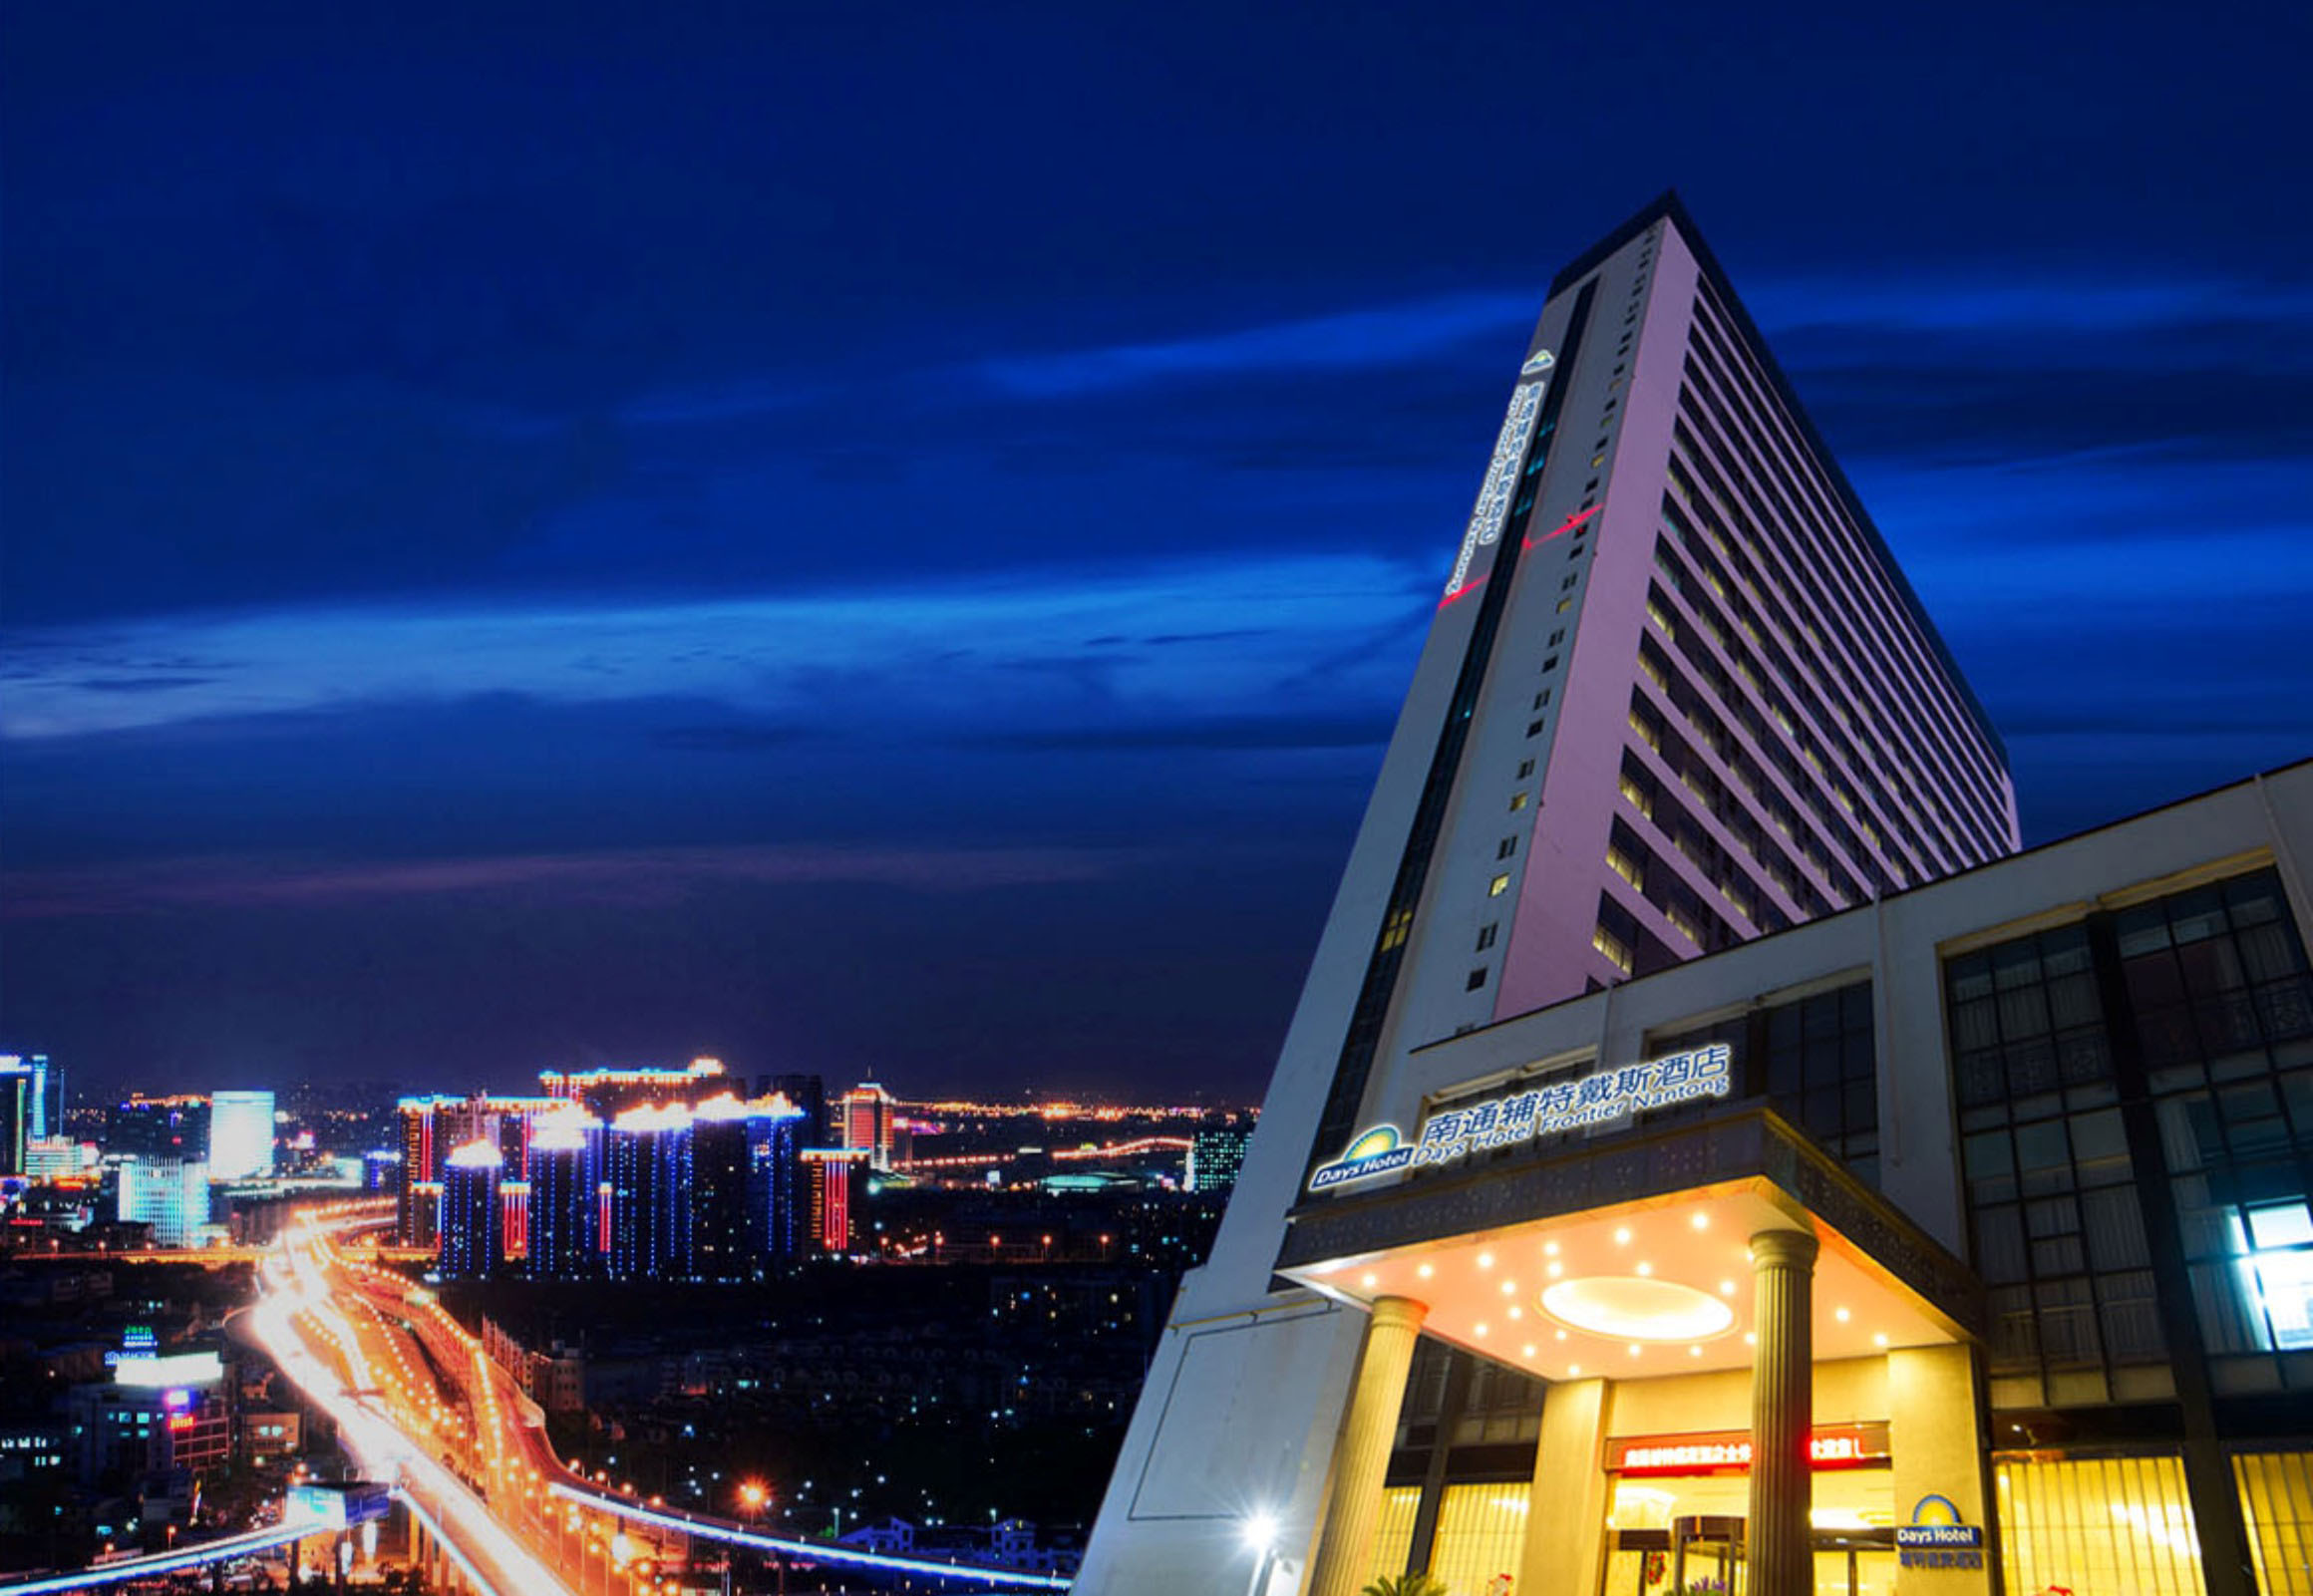 RCI expands portfolio with 11 new Frontier Vacation Club - part of Days Hotel China - properties